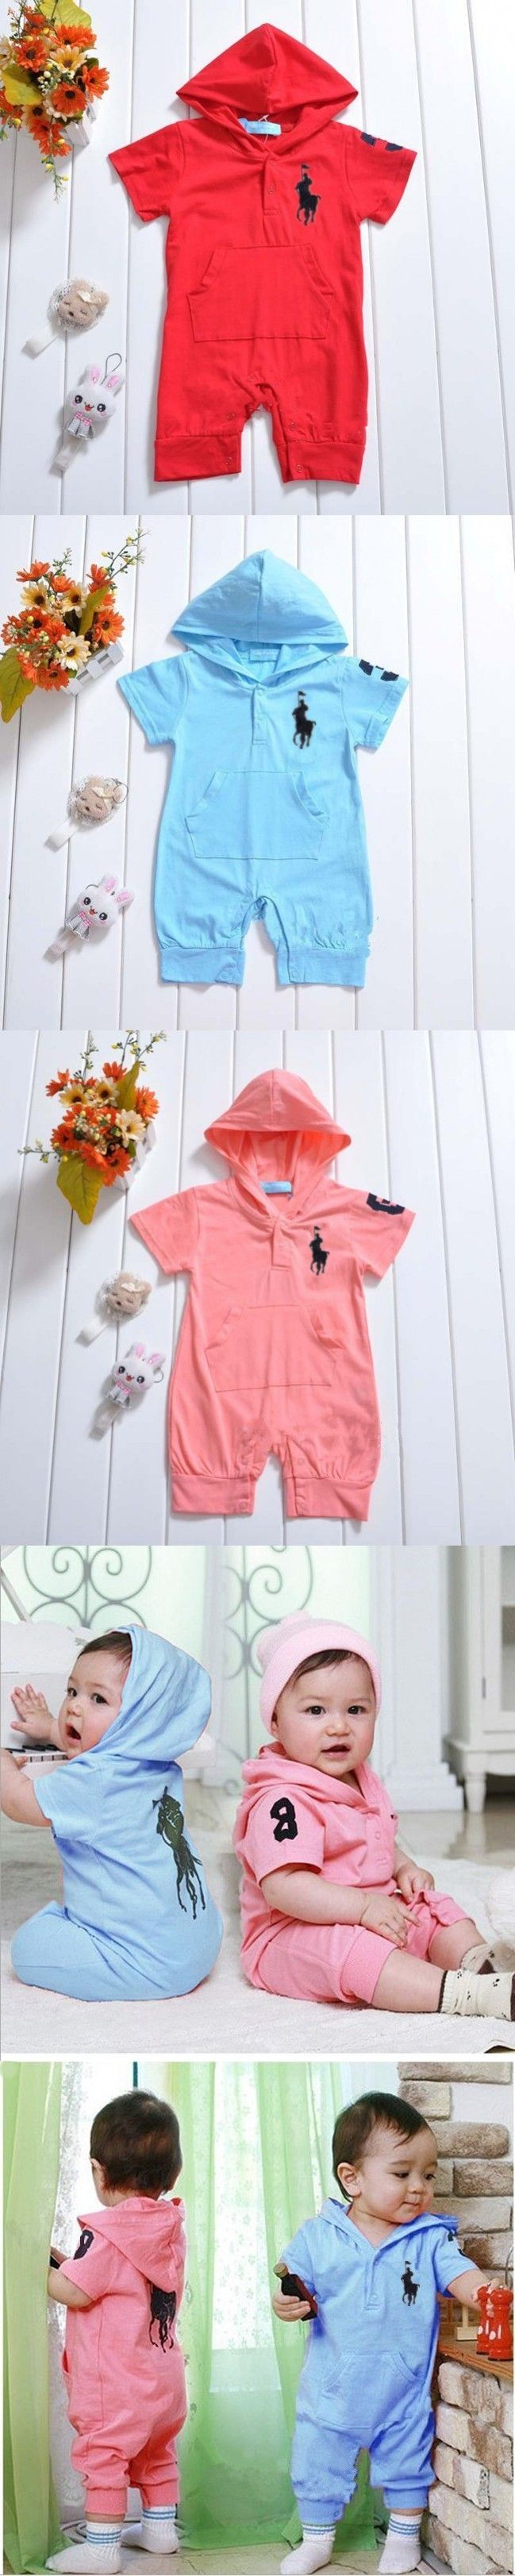 2016 Summer Newborn Baby Rompers Cotton Short Polo Romper Baby Boys Clothes Newborn Jumpsuit Ropa Bebes Brand Baby Girl Clothing $9.98